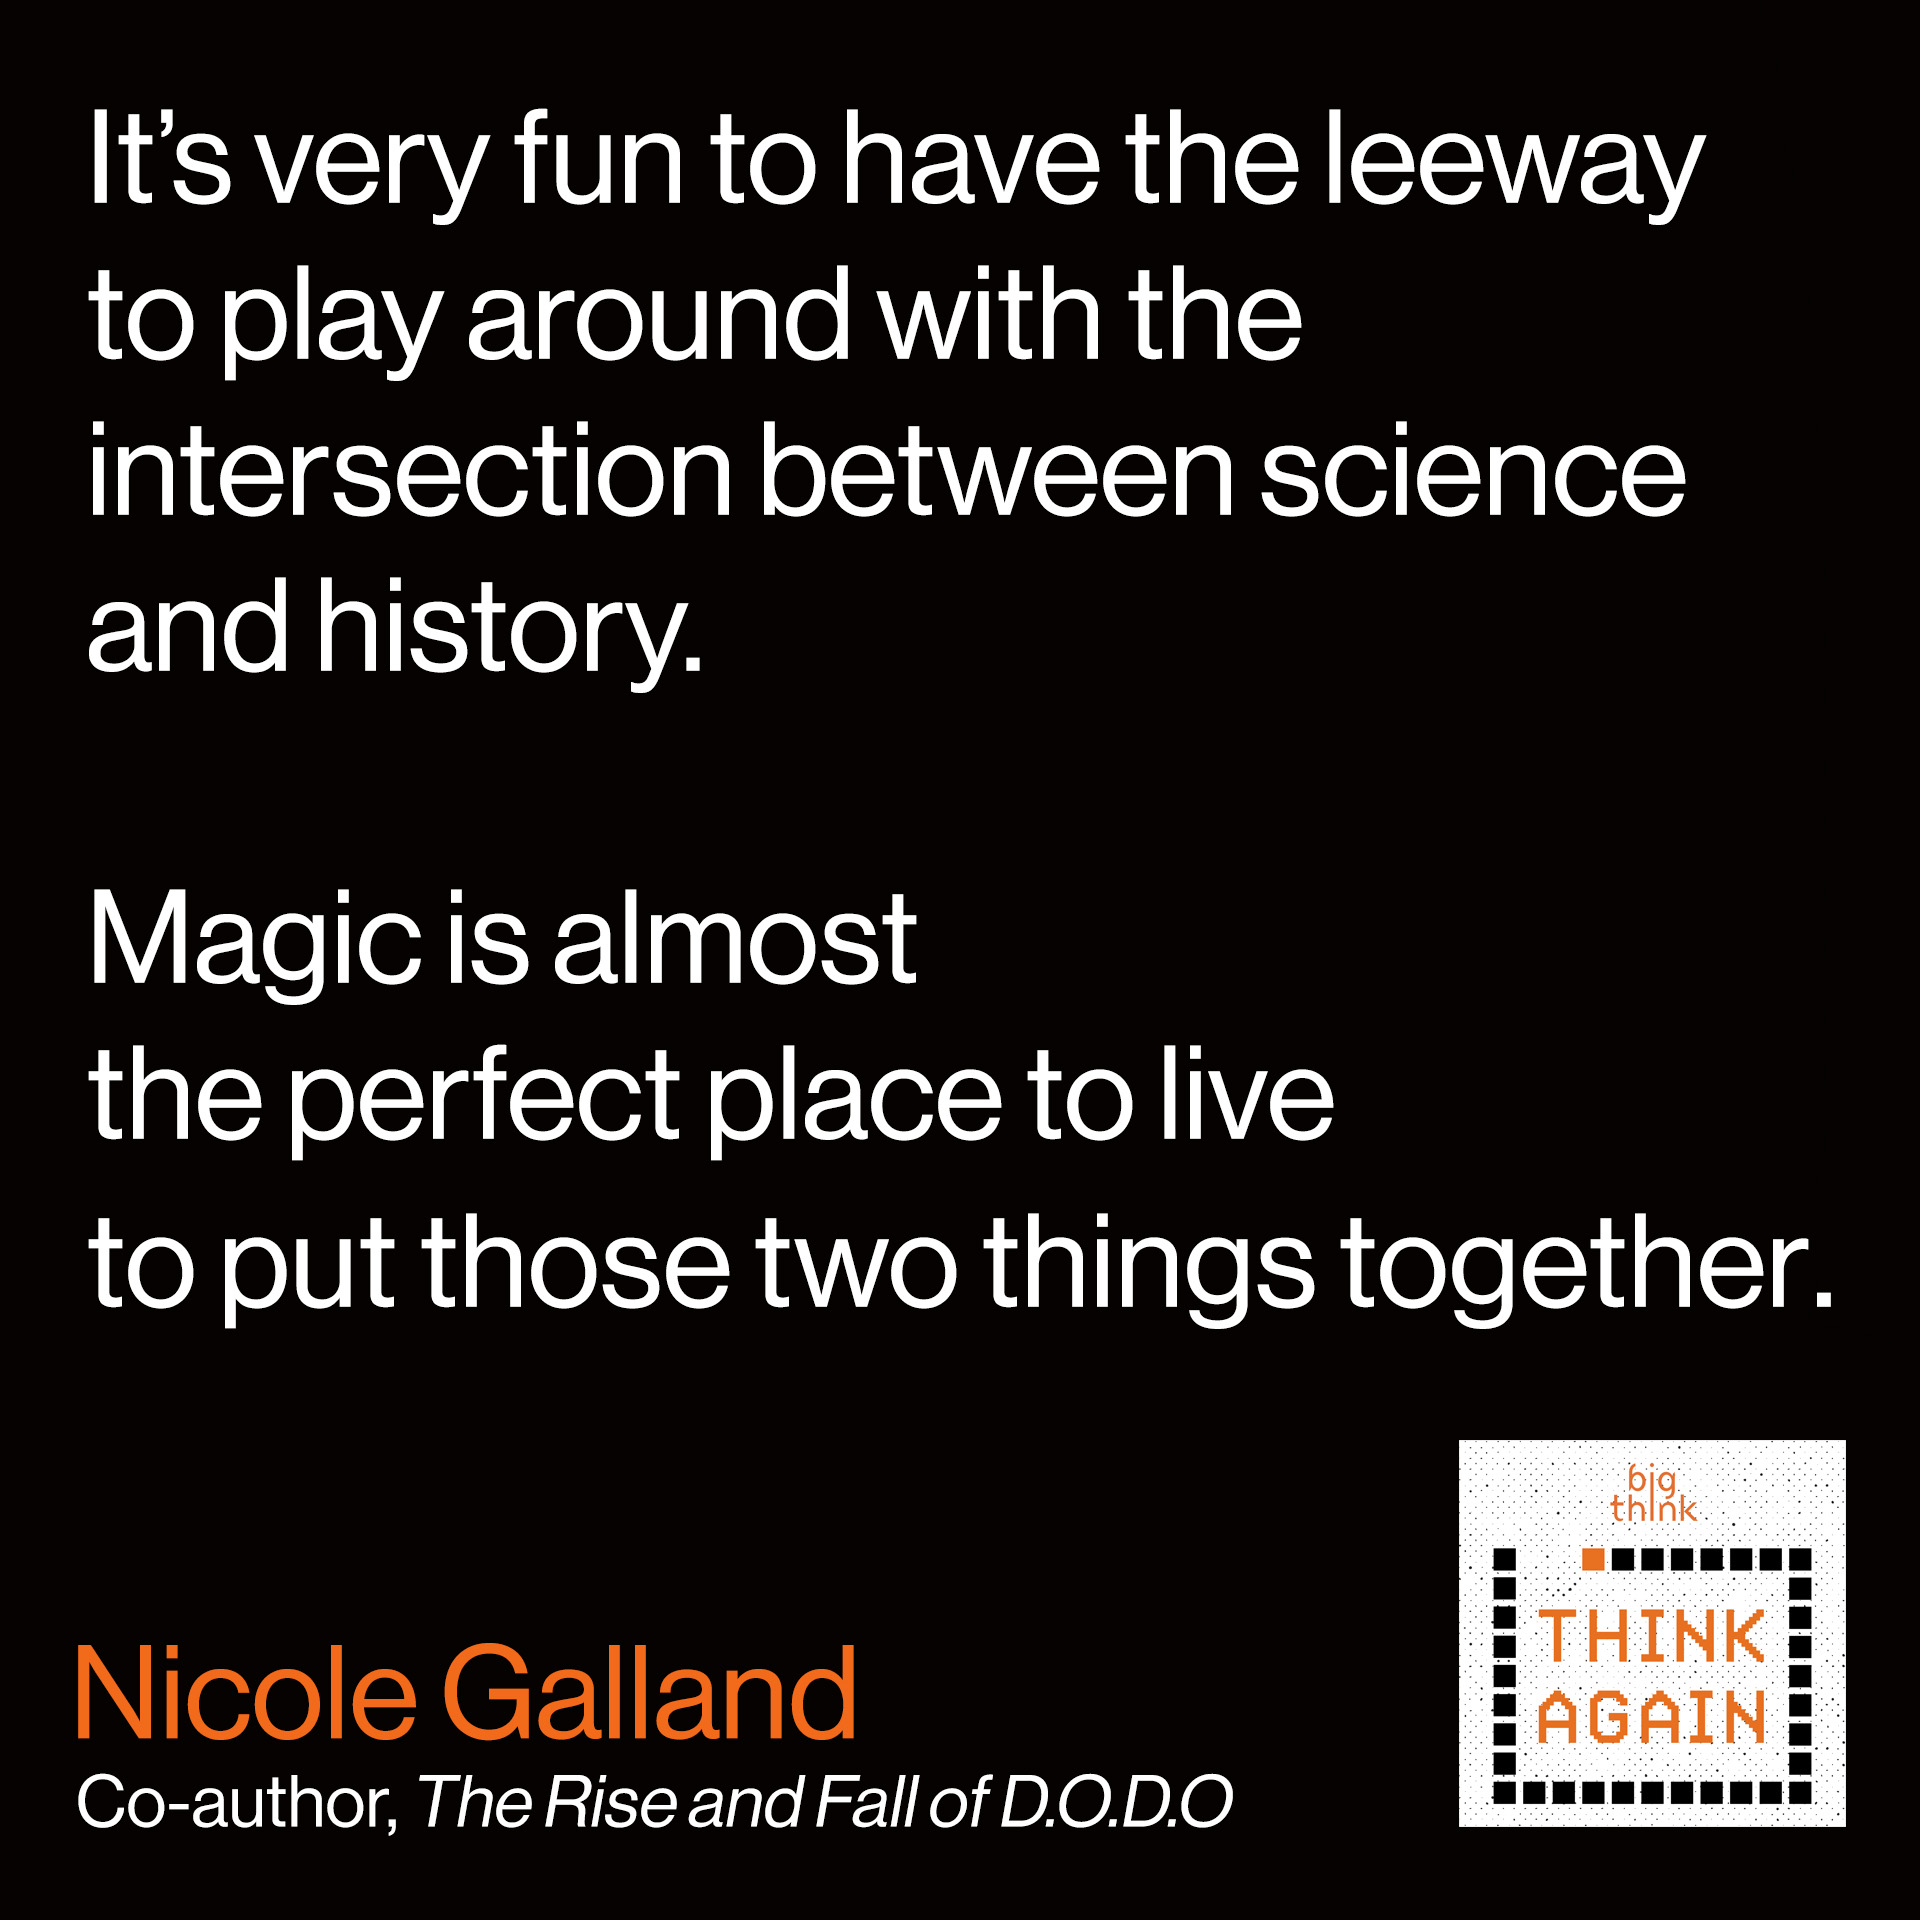 Nicole Galland Quote: It's very fun to have the leeway to play around  with the intersection between science and history.  Magic is almost the perfect place to live  to put those two things together.